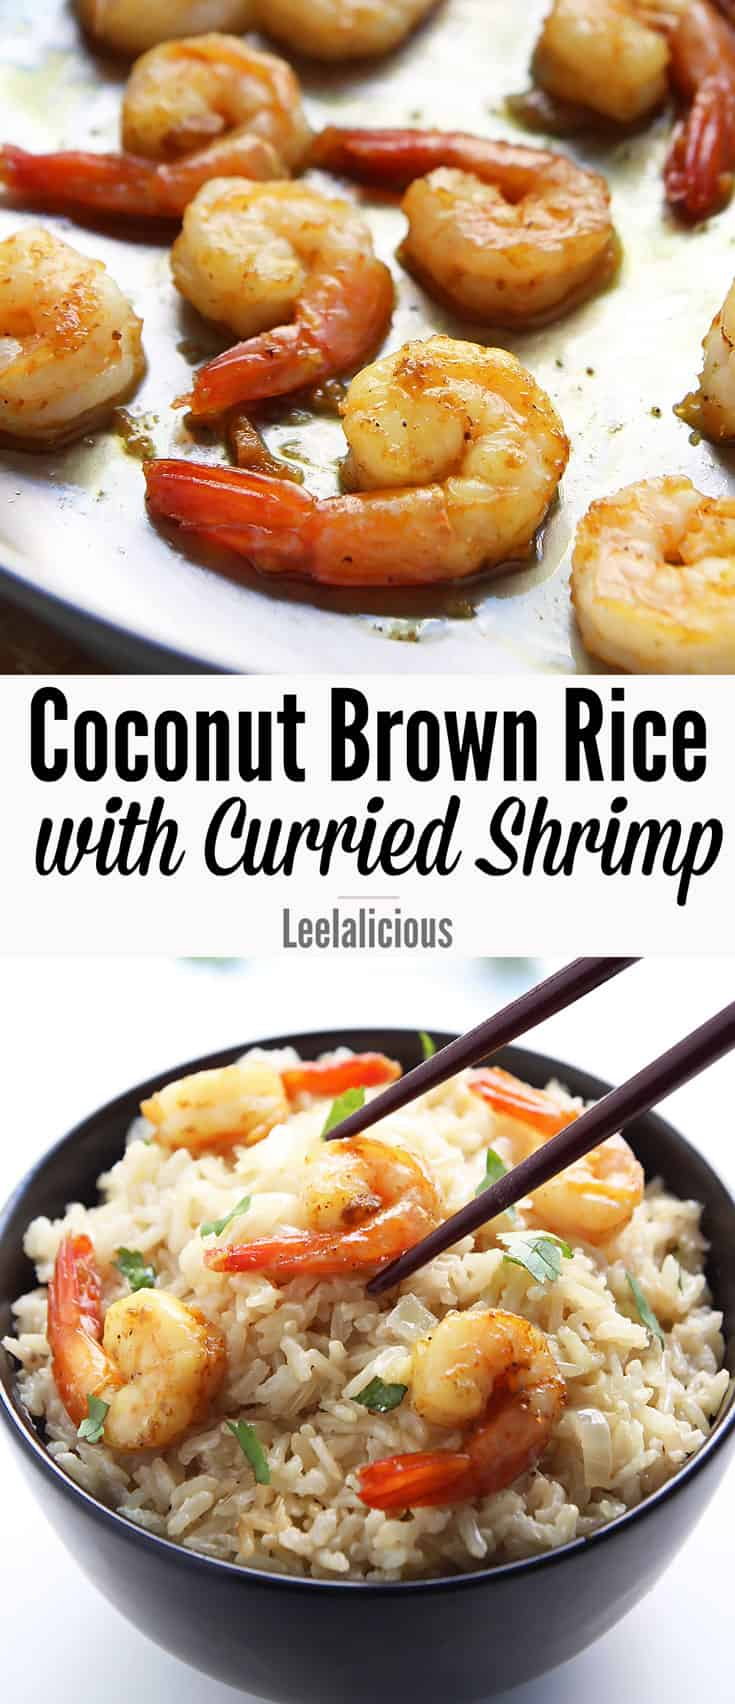 Coconut Brown Rice with Curried Shrimp – LeelaLicious